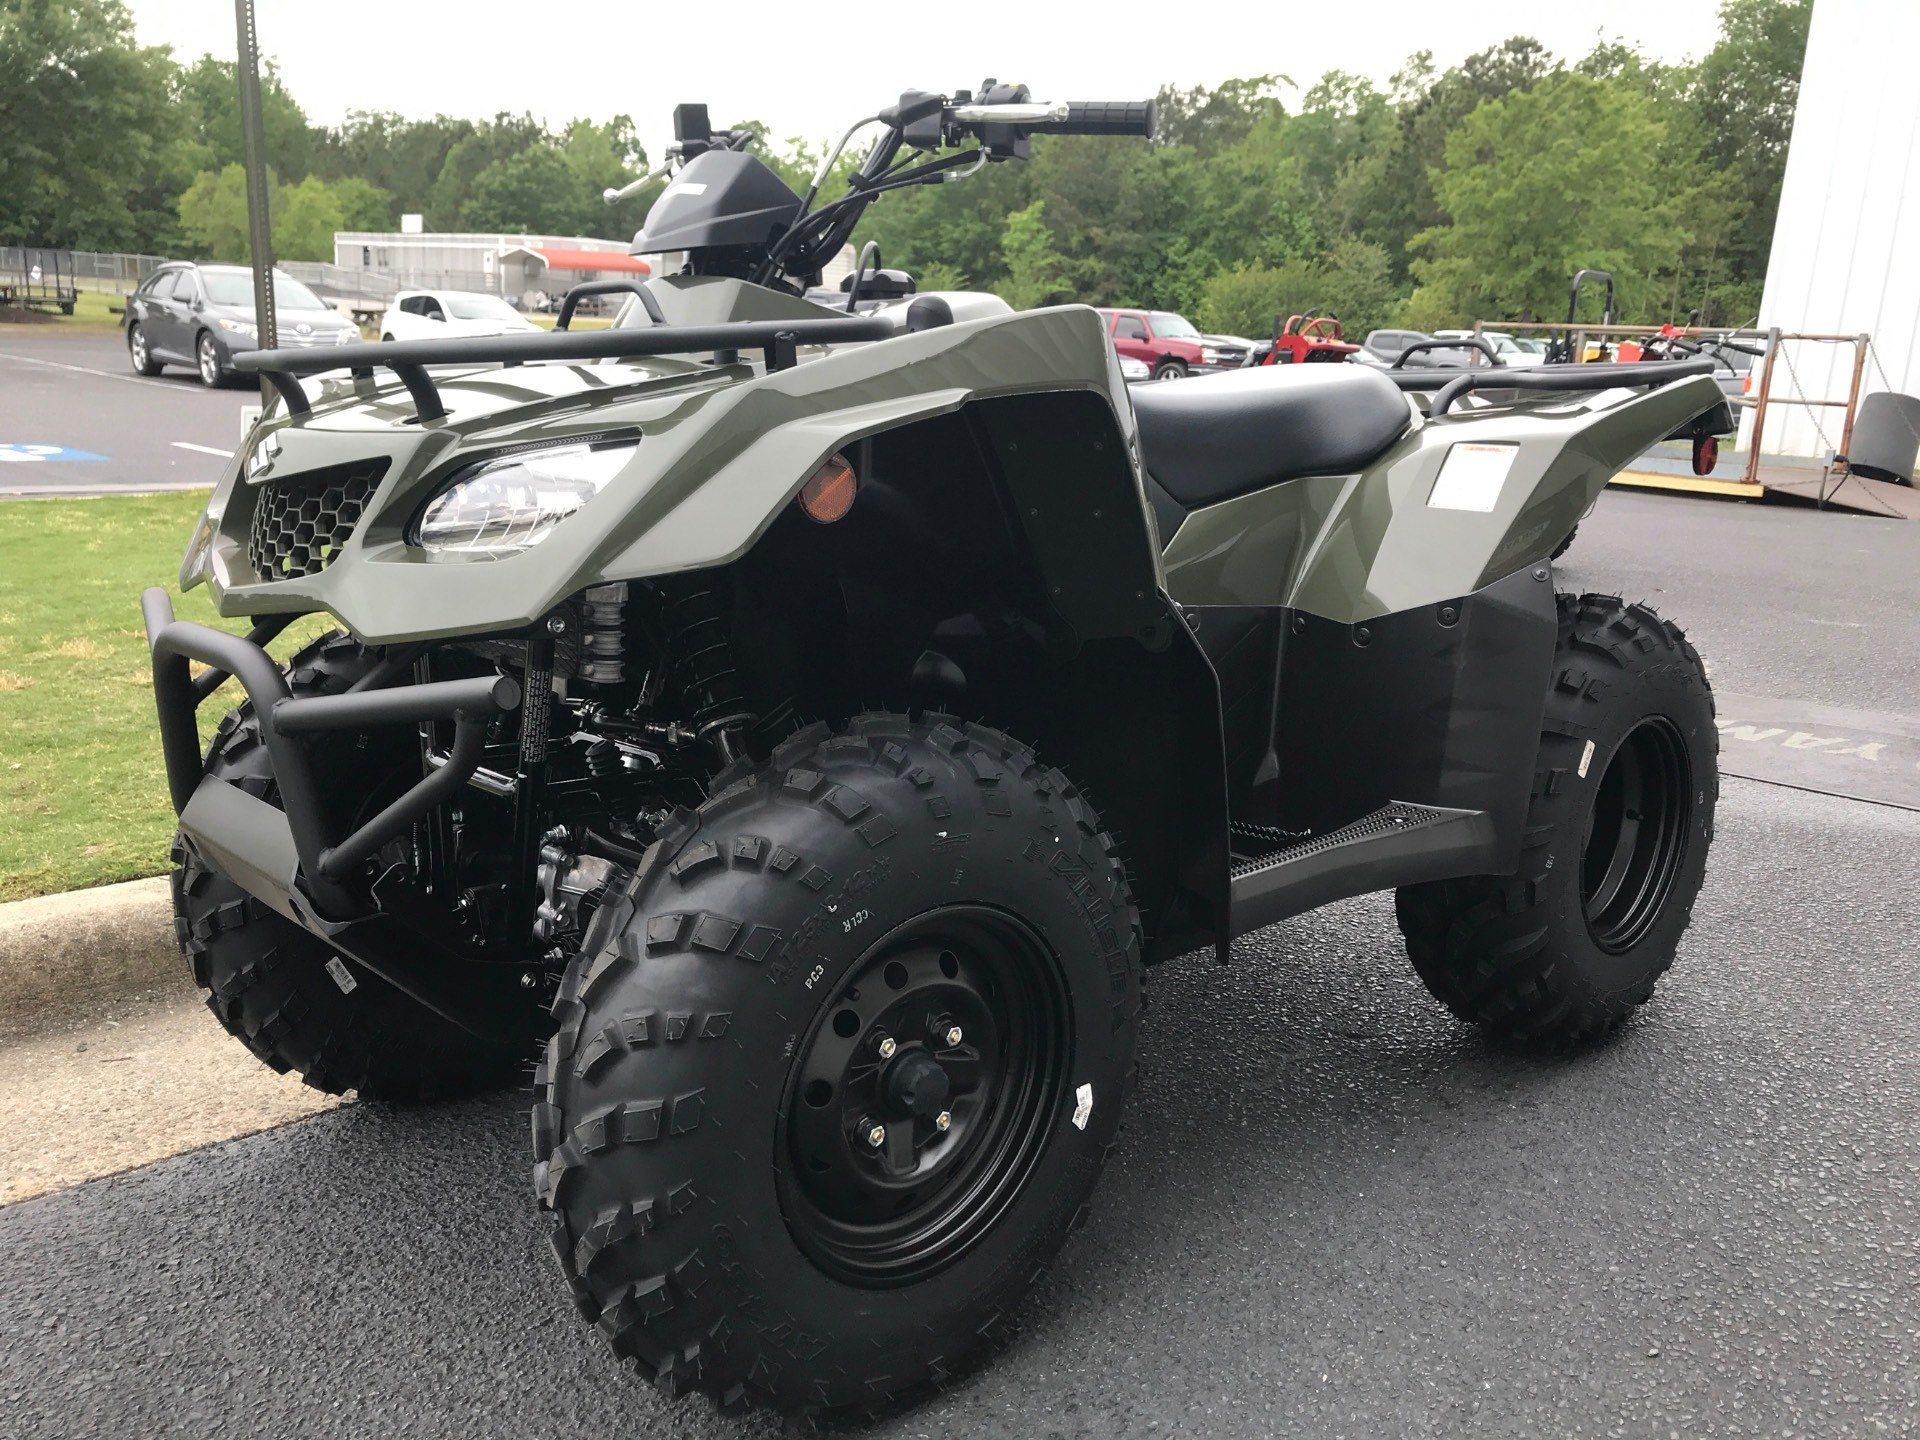 2020 Suzuki KingQuad 400ASi in Greenville, North Carolina - Photo 4